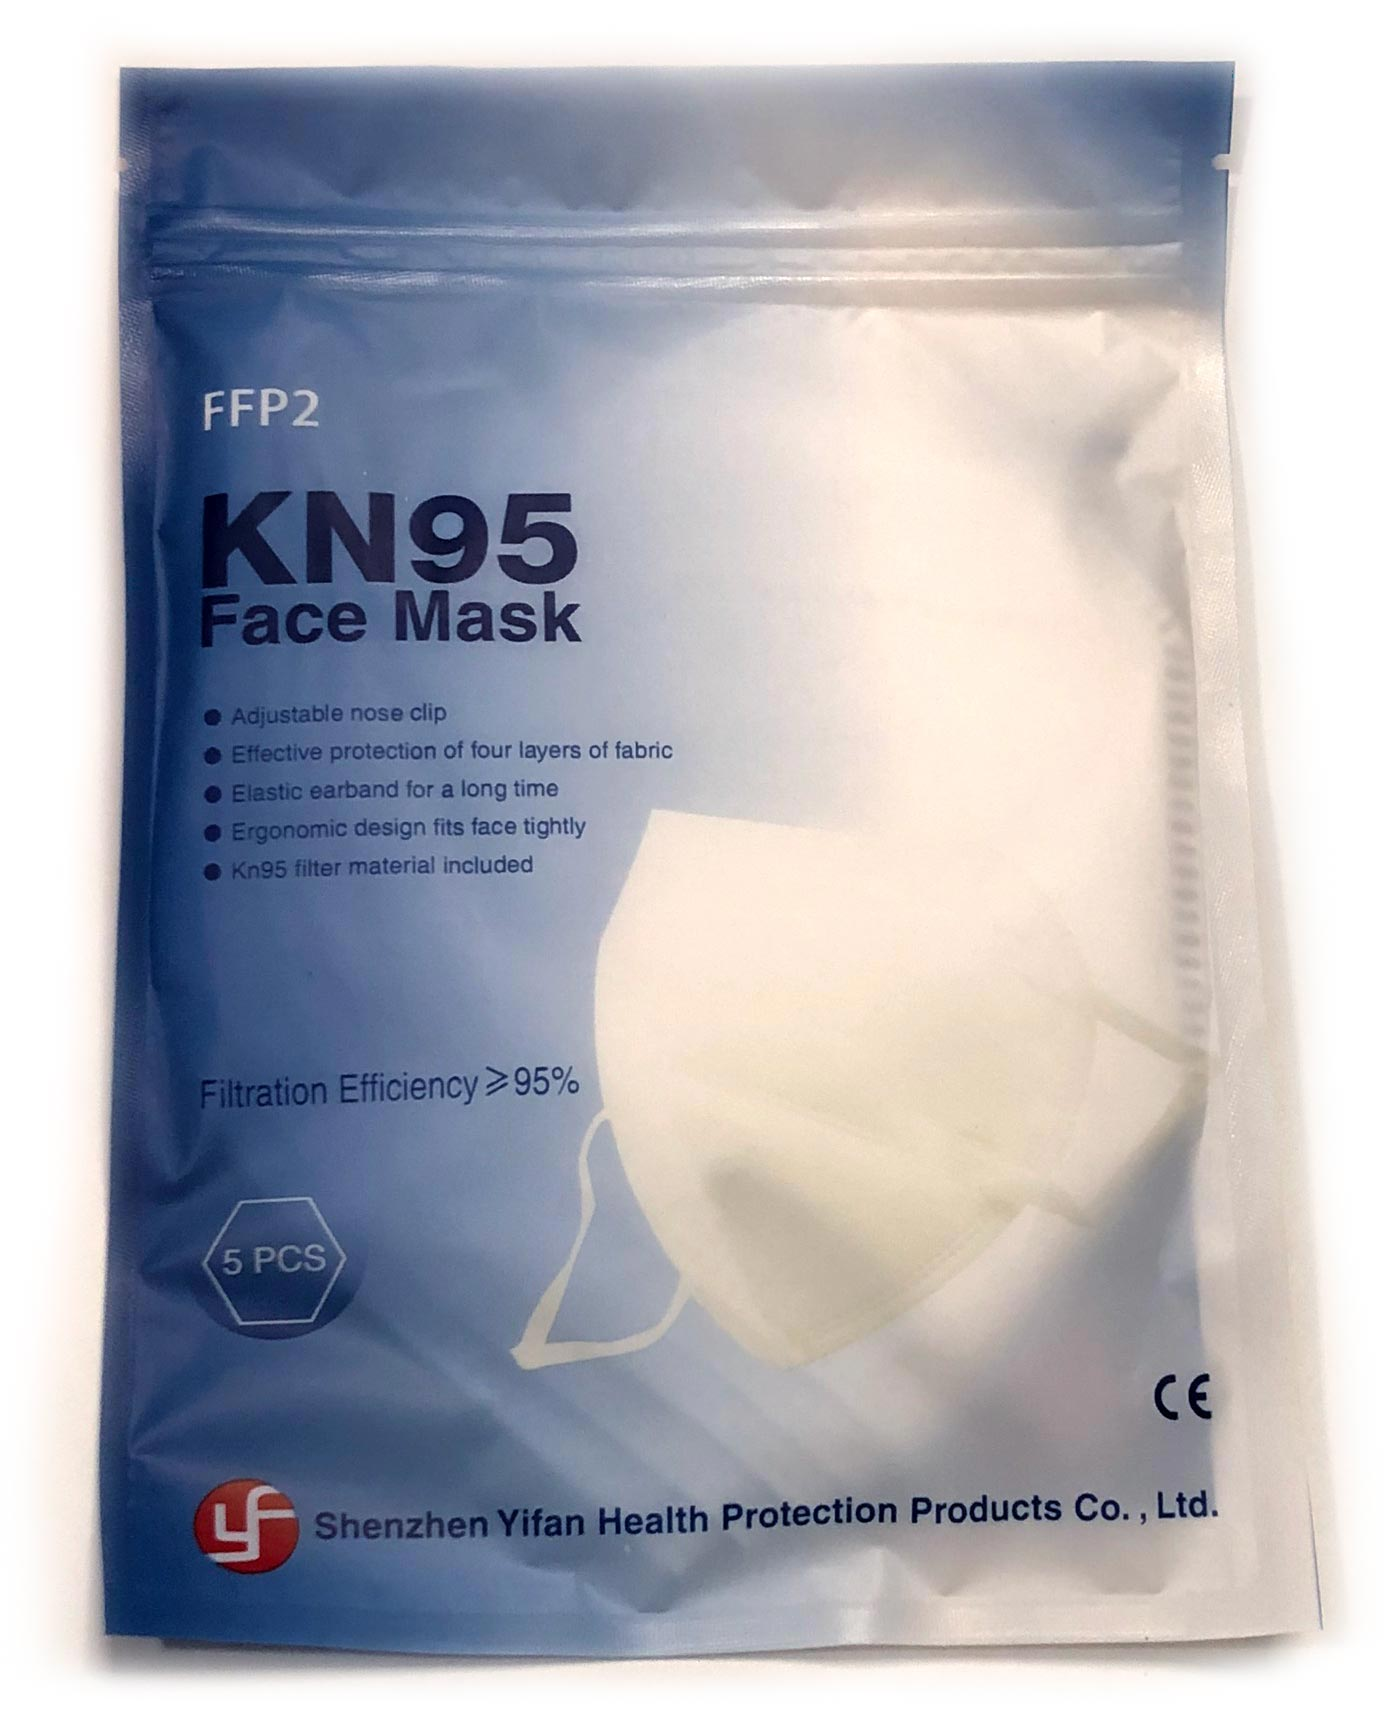 KN95 Face Mask: 5 PCS/pack, 10 PACKS, 50 Pieces total